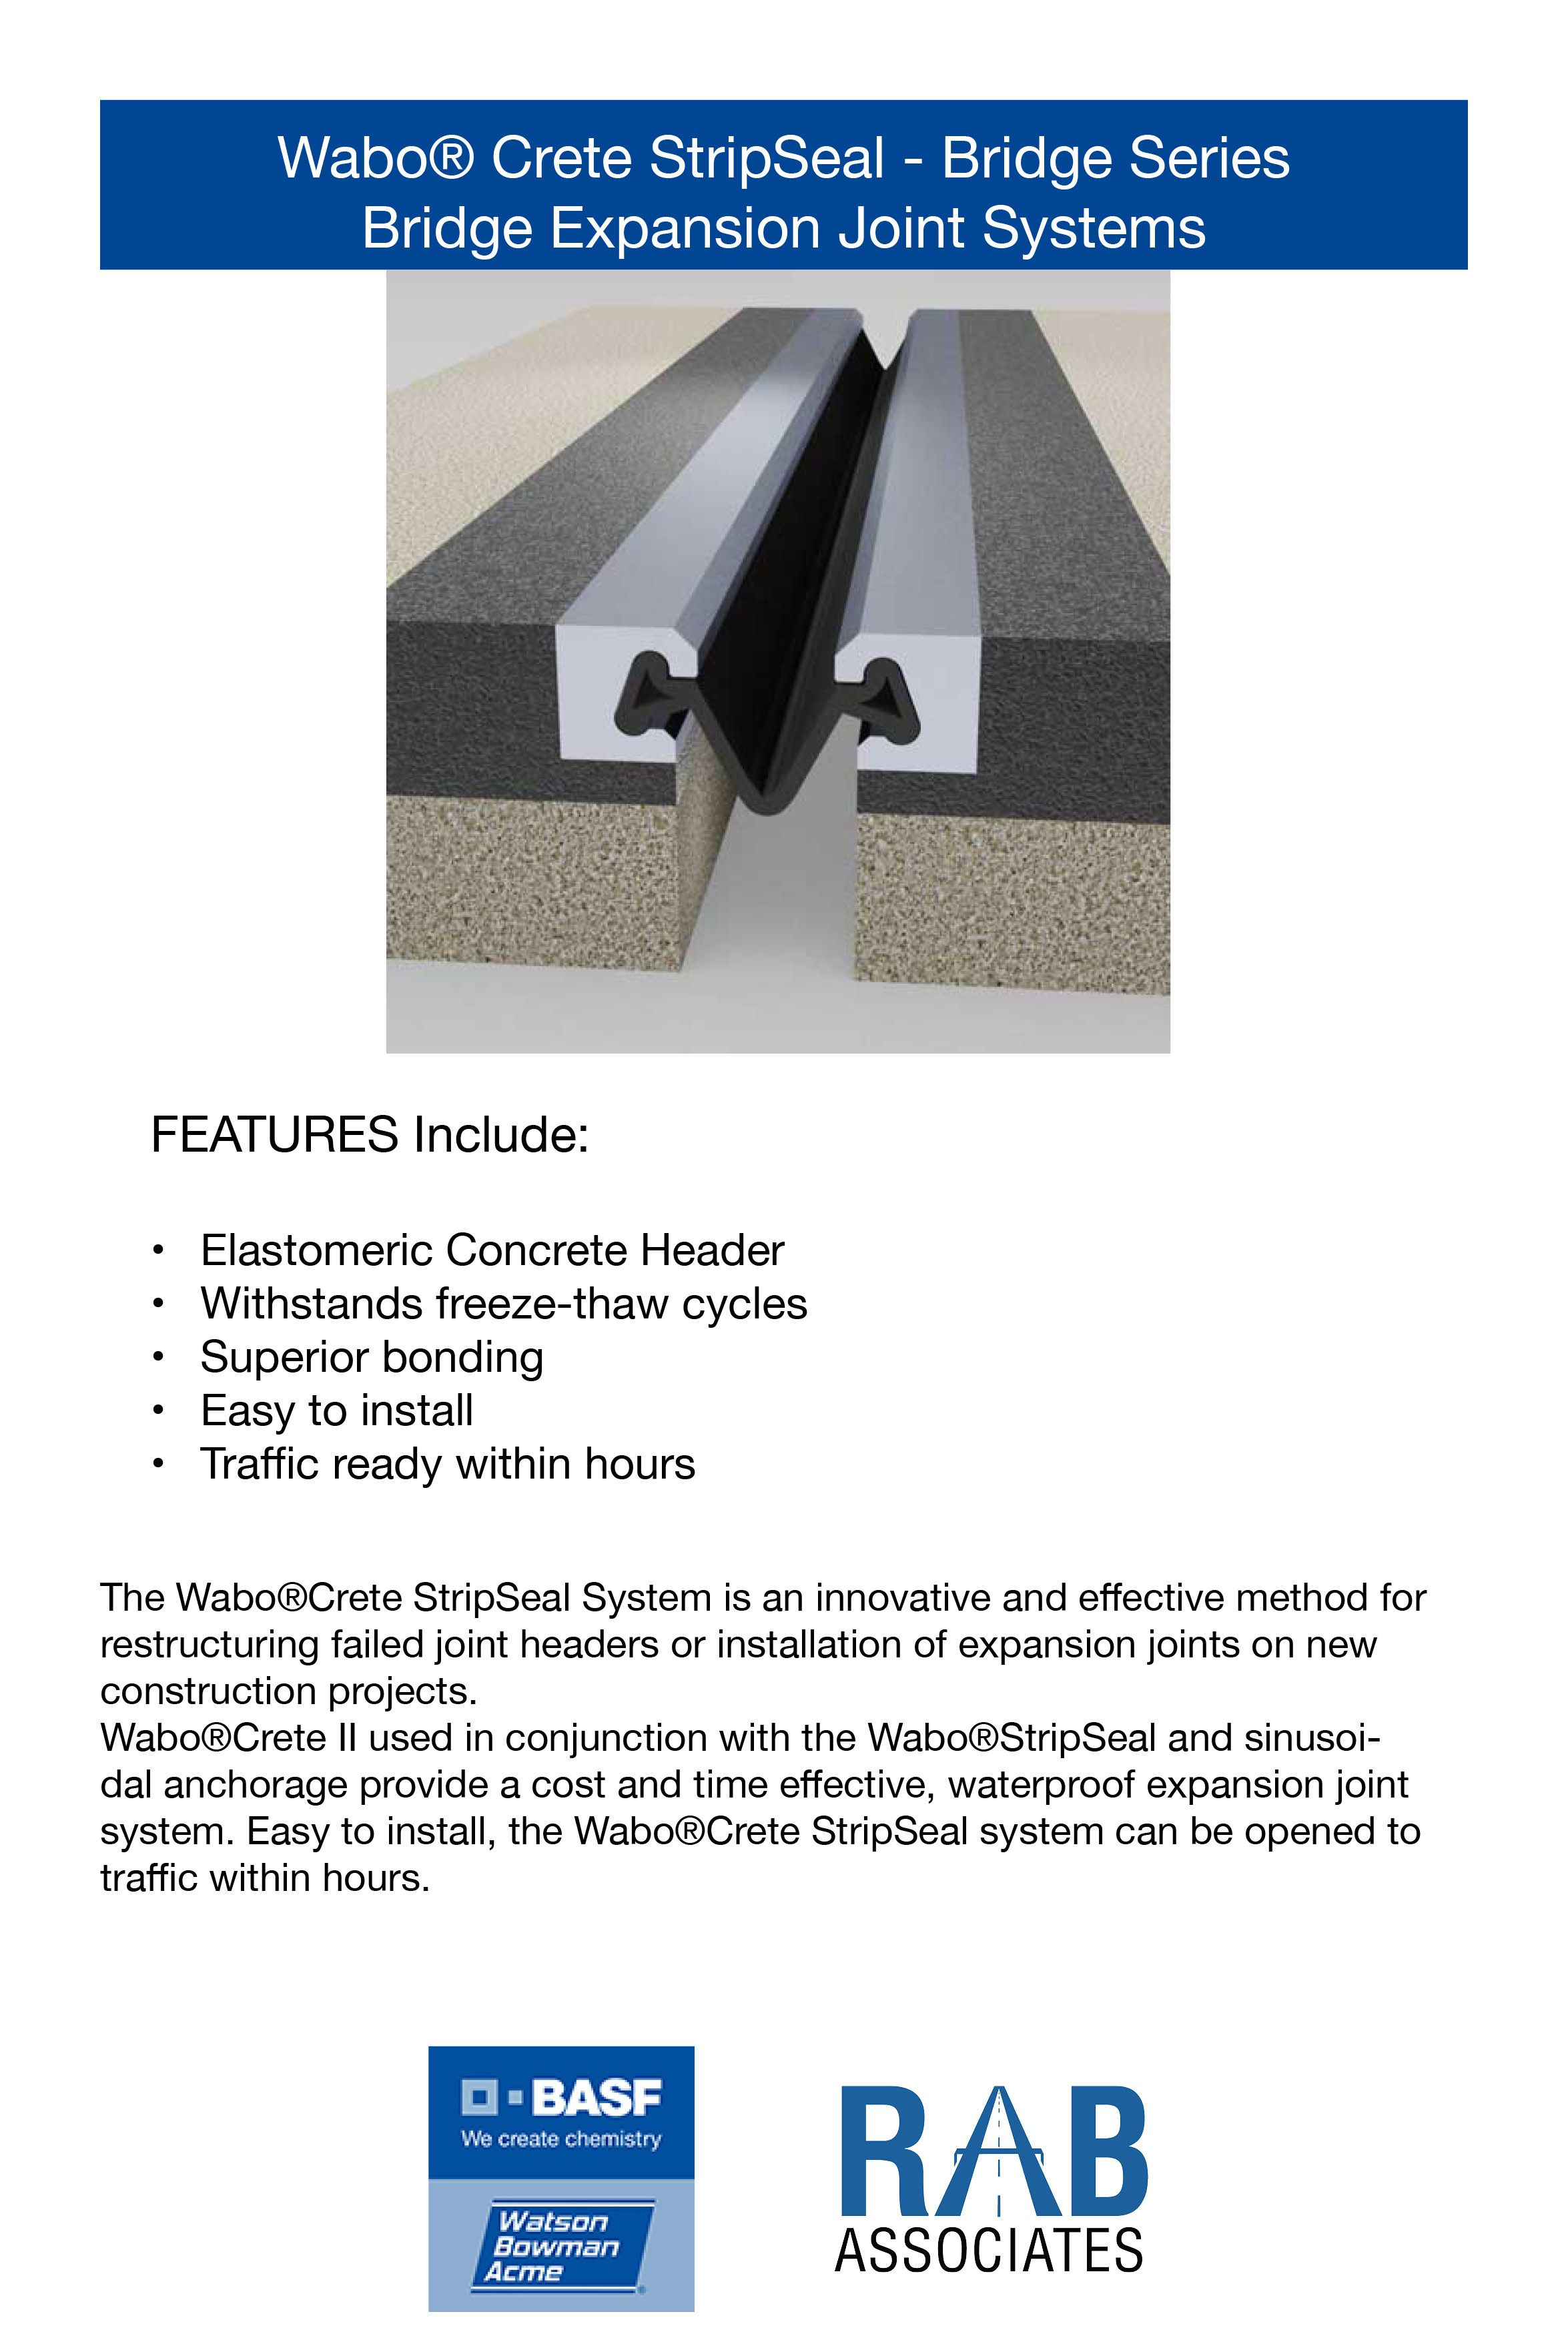 Cost Effective Waterproof Expansion Joint System With Sinusoidal Anchorage Expansion Joint The Expanse Repair